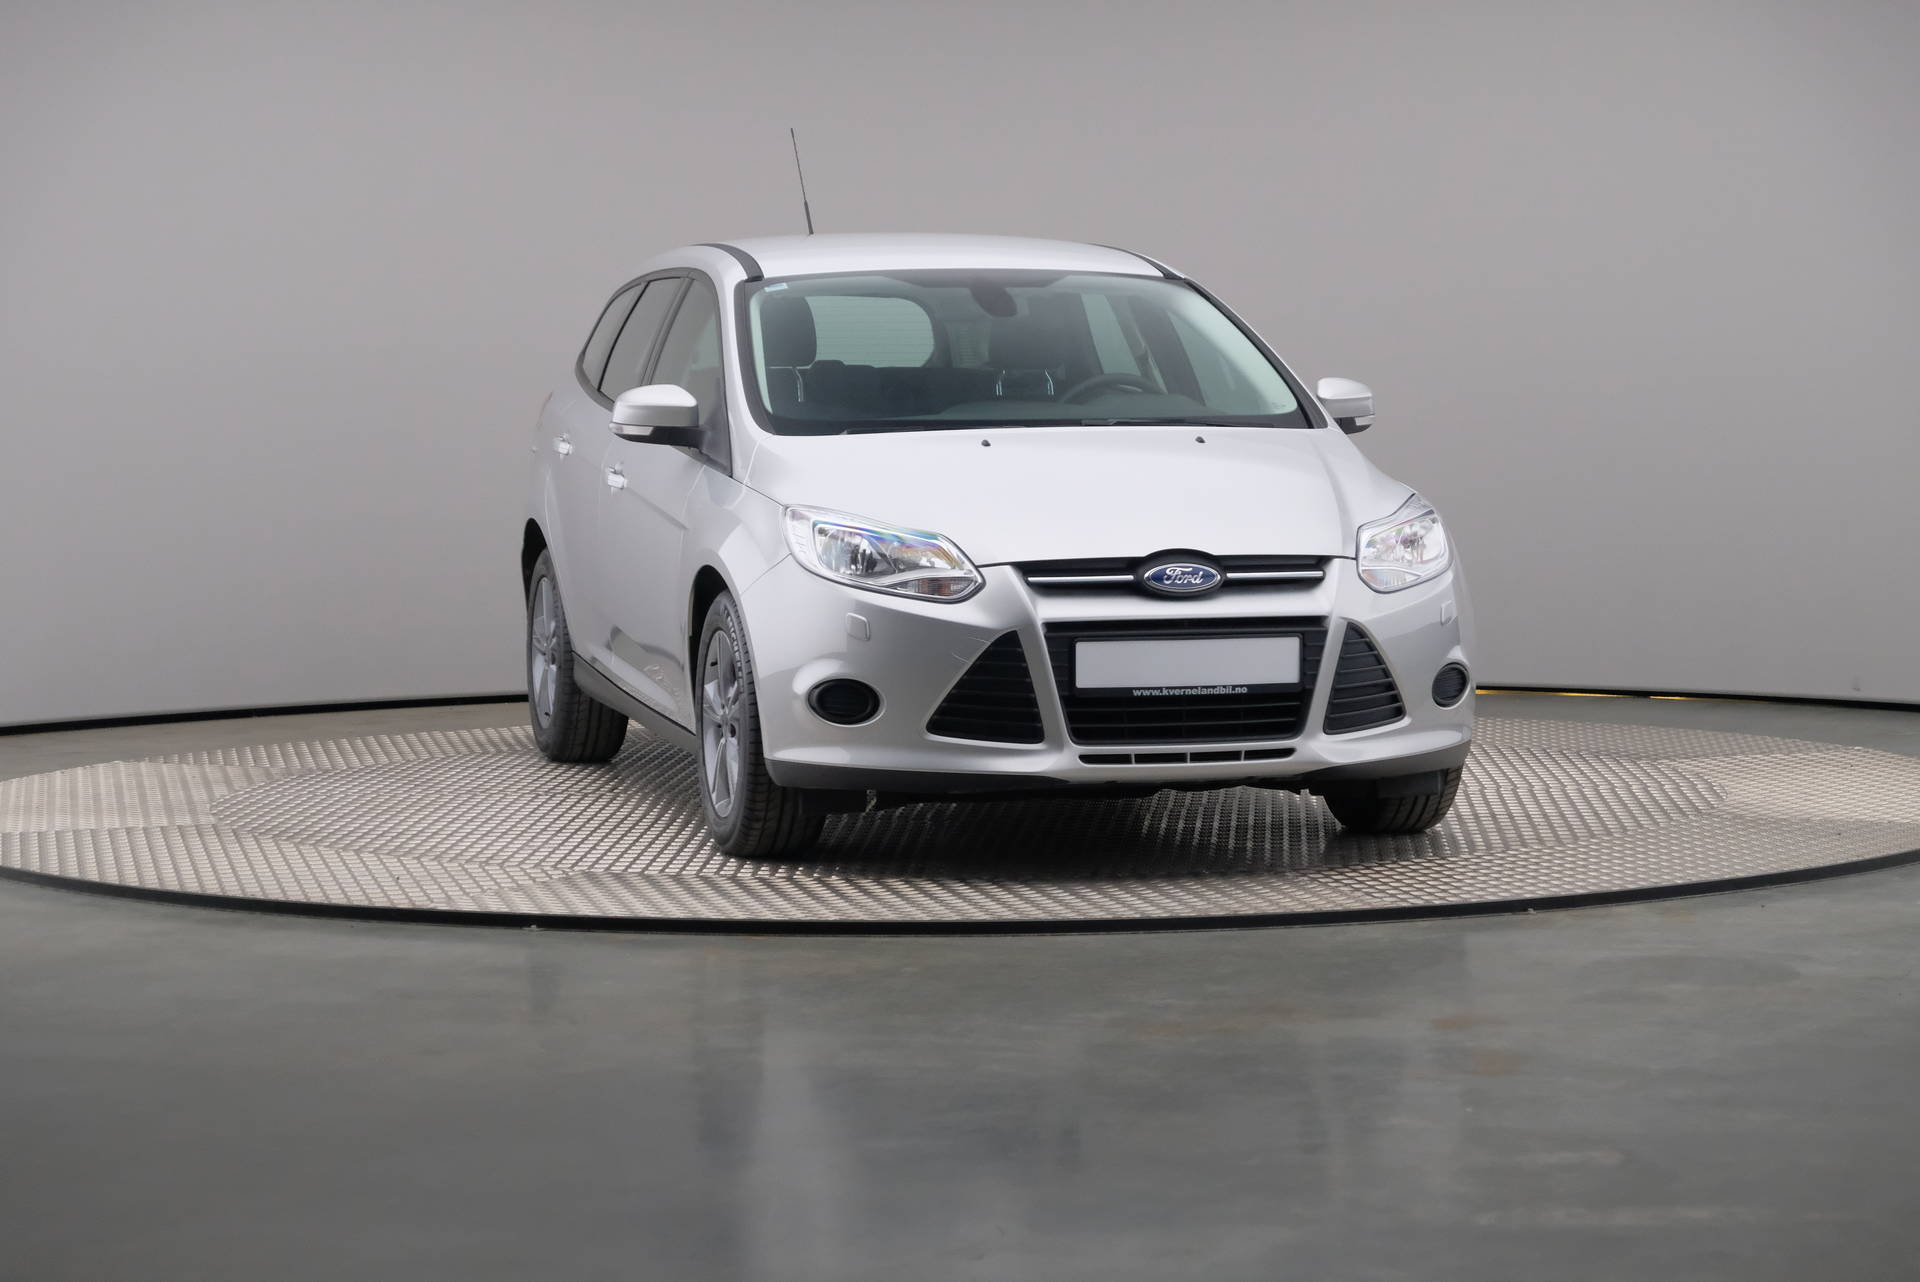 Ford Focus 1.1 100HK Trend PDC/BT, 360-image30